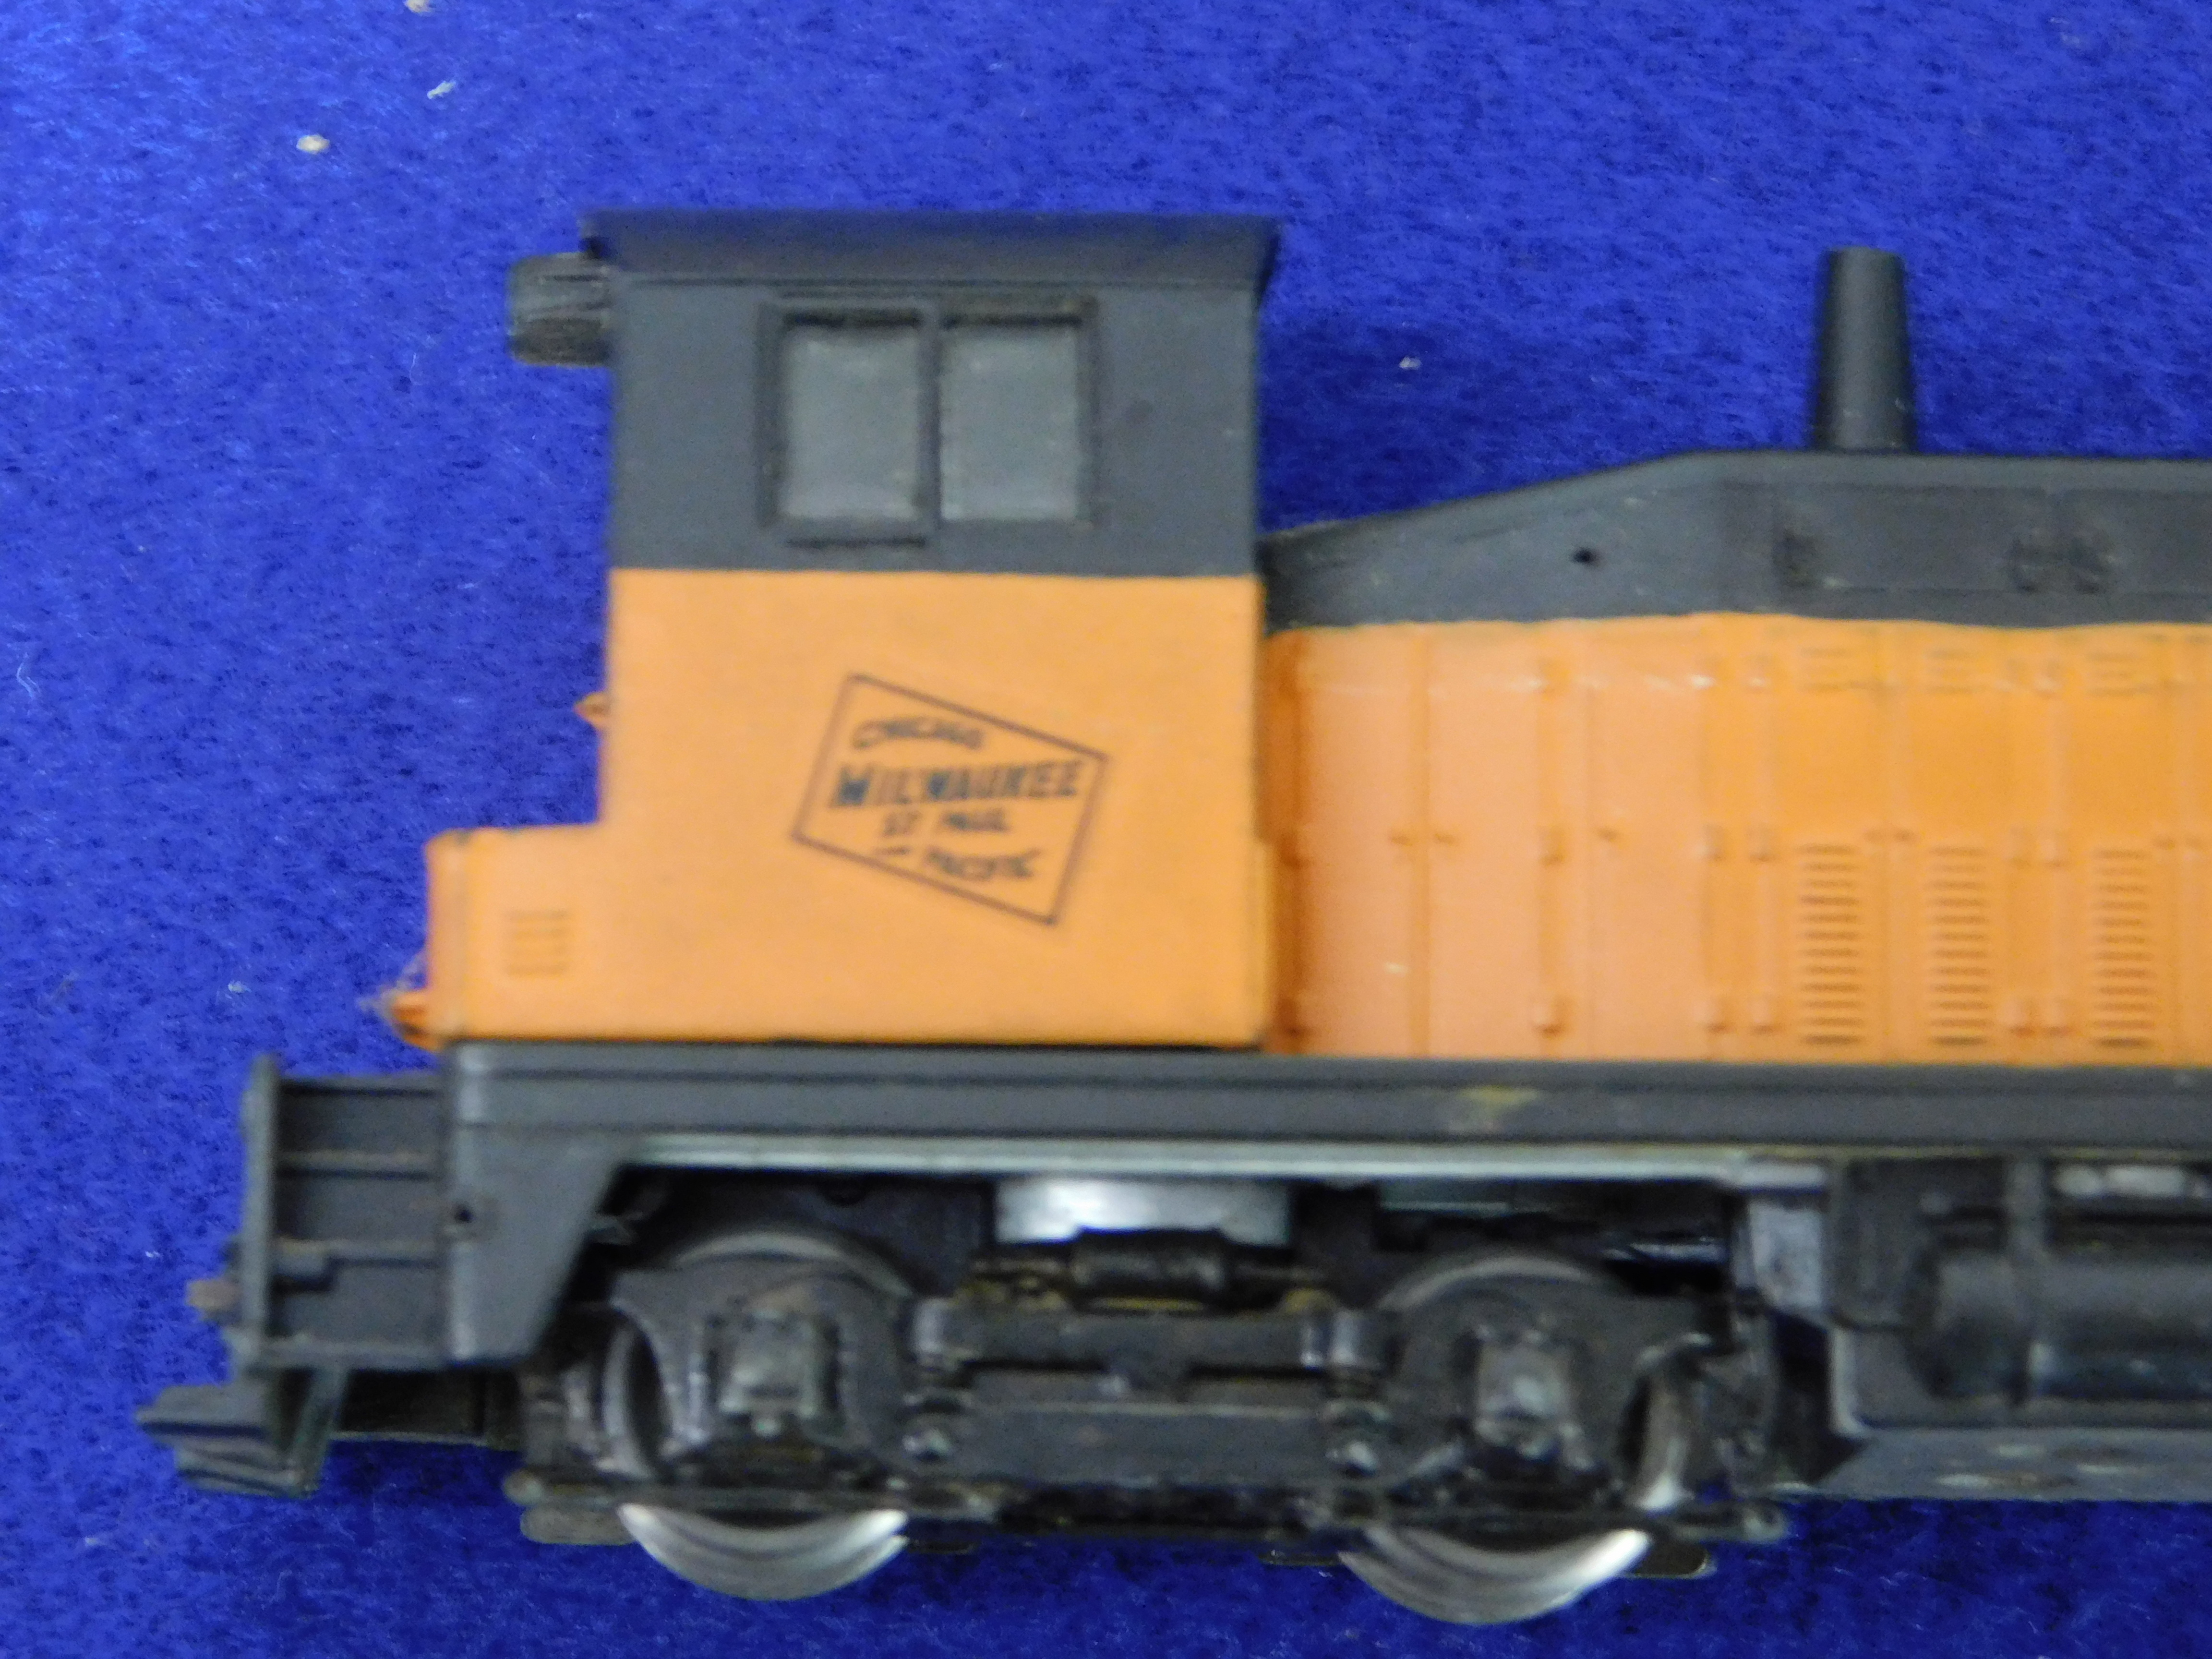 ATHEARN HO SCALE SW1500 SWITCHER